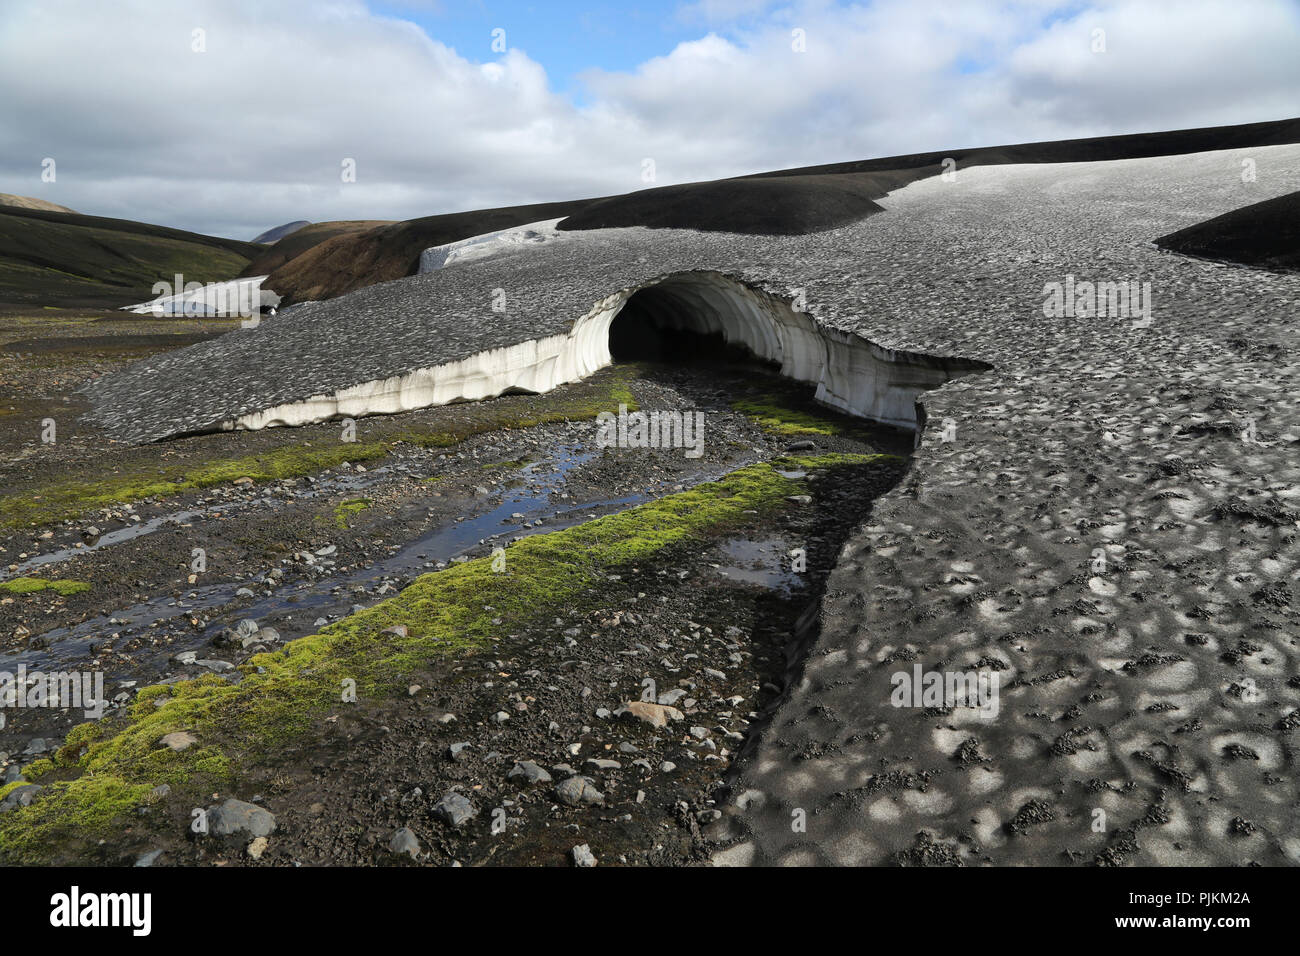 Iceland, Fjallabak, snowfield, old snow covered with volcanic ash in summer, meltwater - Stock Image